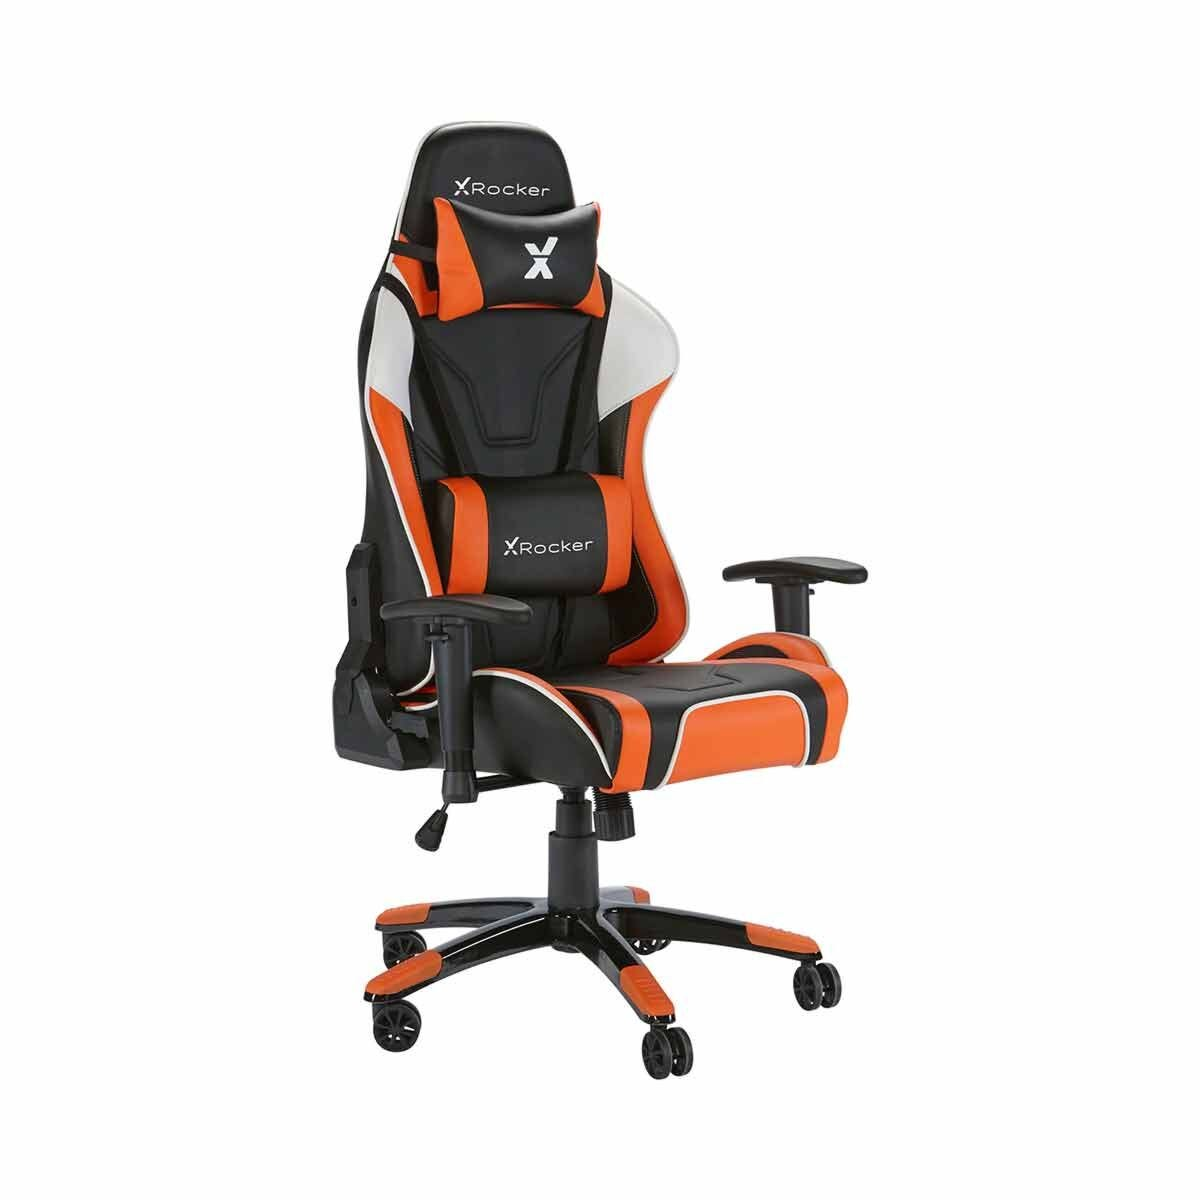 X Rocker Agility eSports Office Gaming Chair Orange